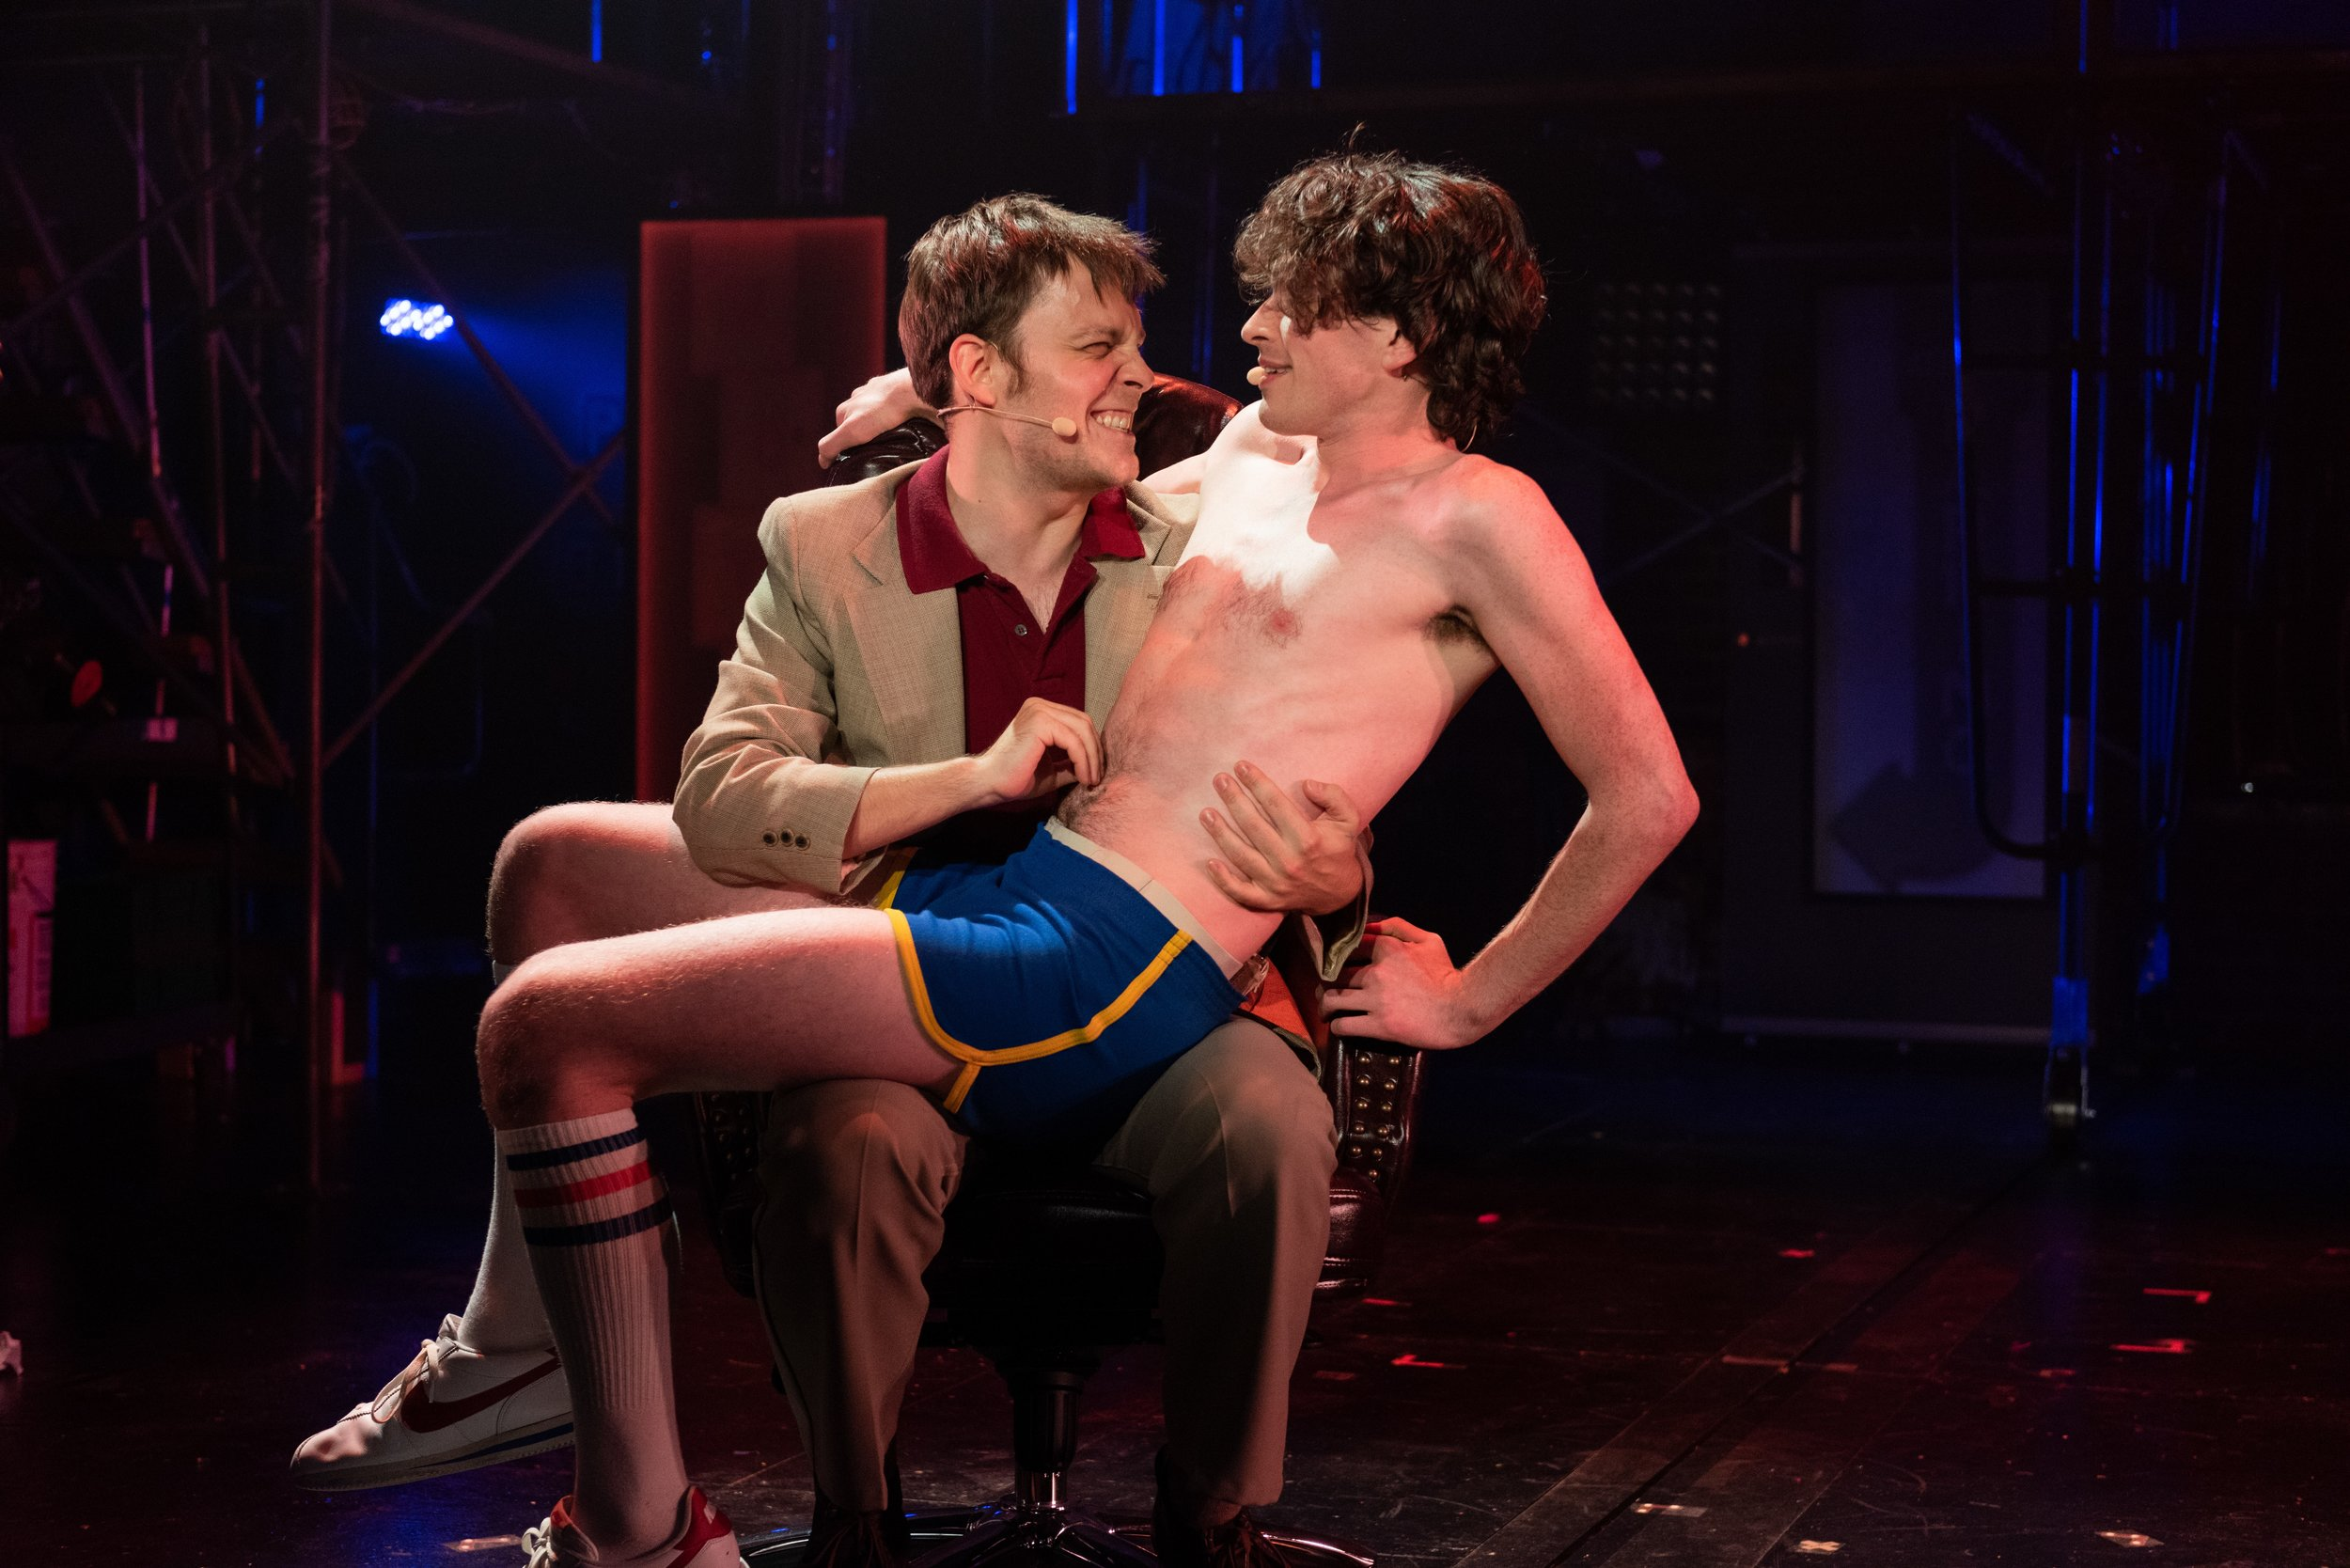 (l-r) Theo Stockman as Steve Rubell and Peter LaPrade as Chad. Photo Credit: Ben Arons